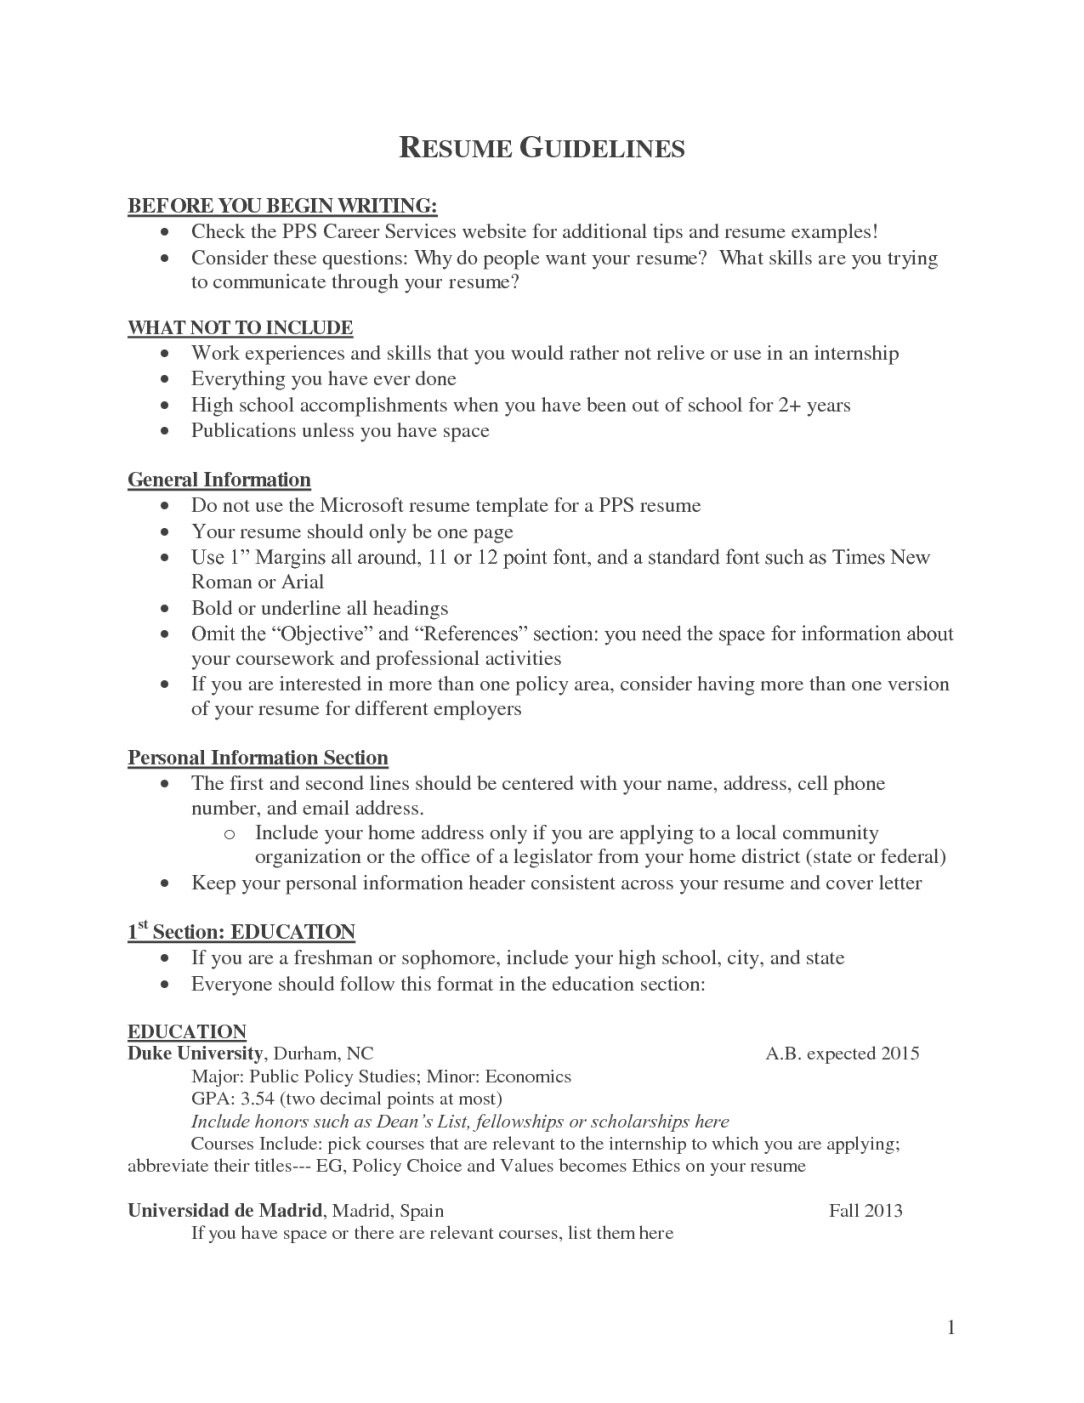 Skills Resume Template Additional Skills Resume Examples How Write Section For